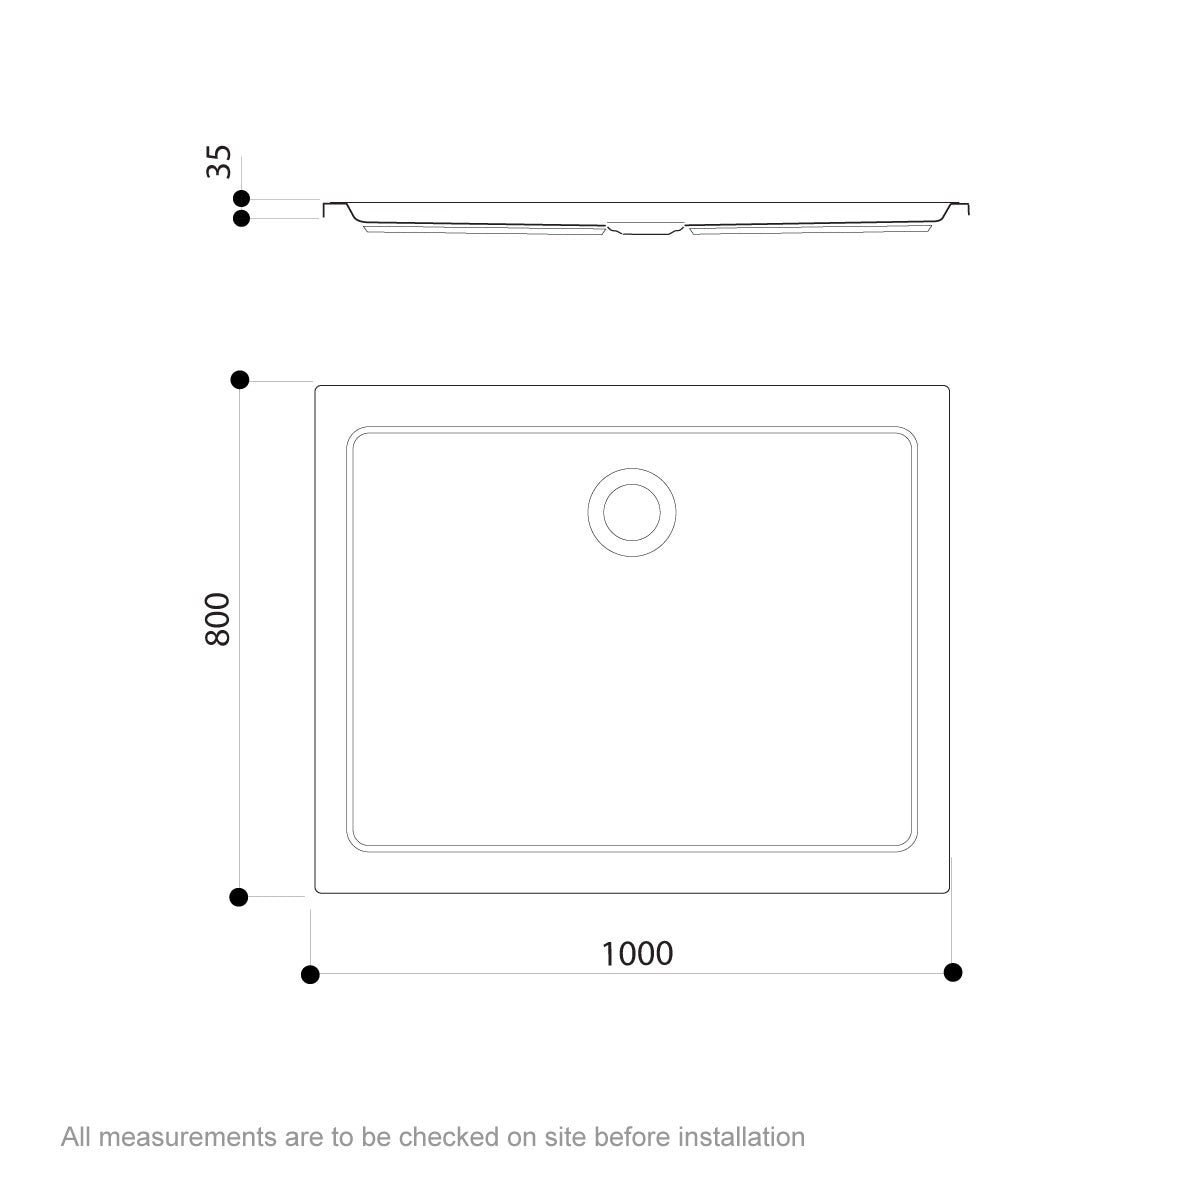 Dimensions for Jacuzzi Essentials matt white acrylic shower tray 1000 x 800